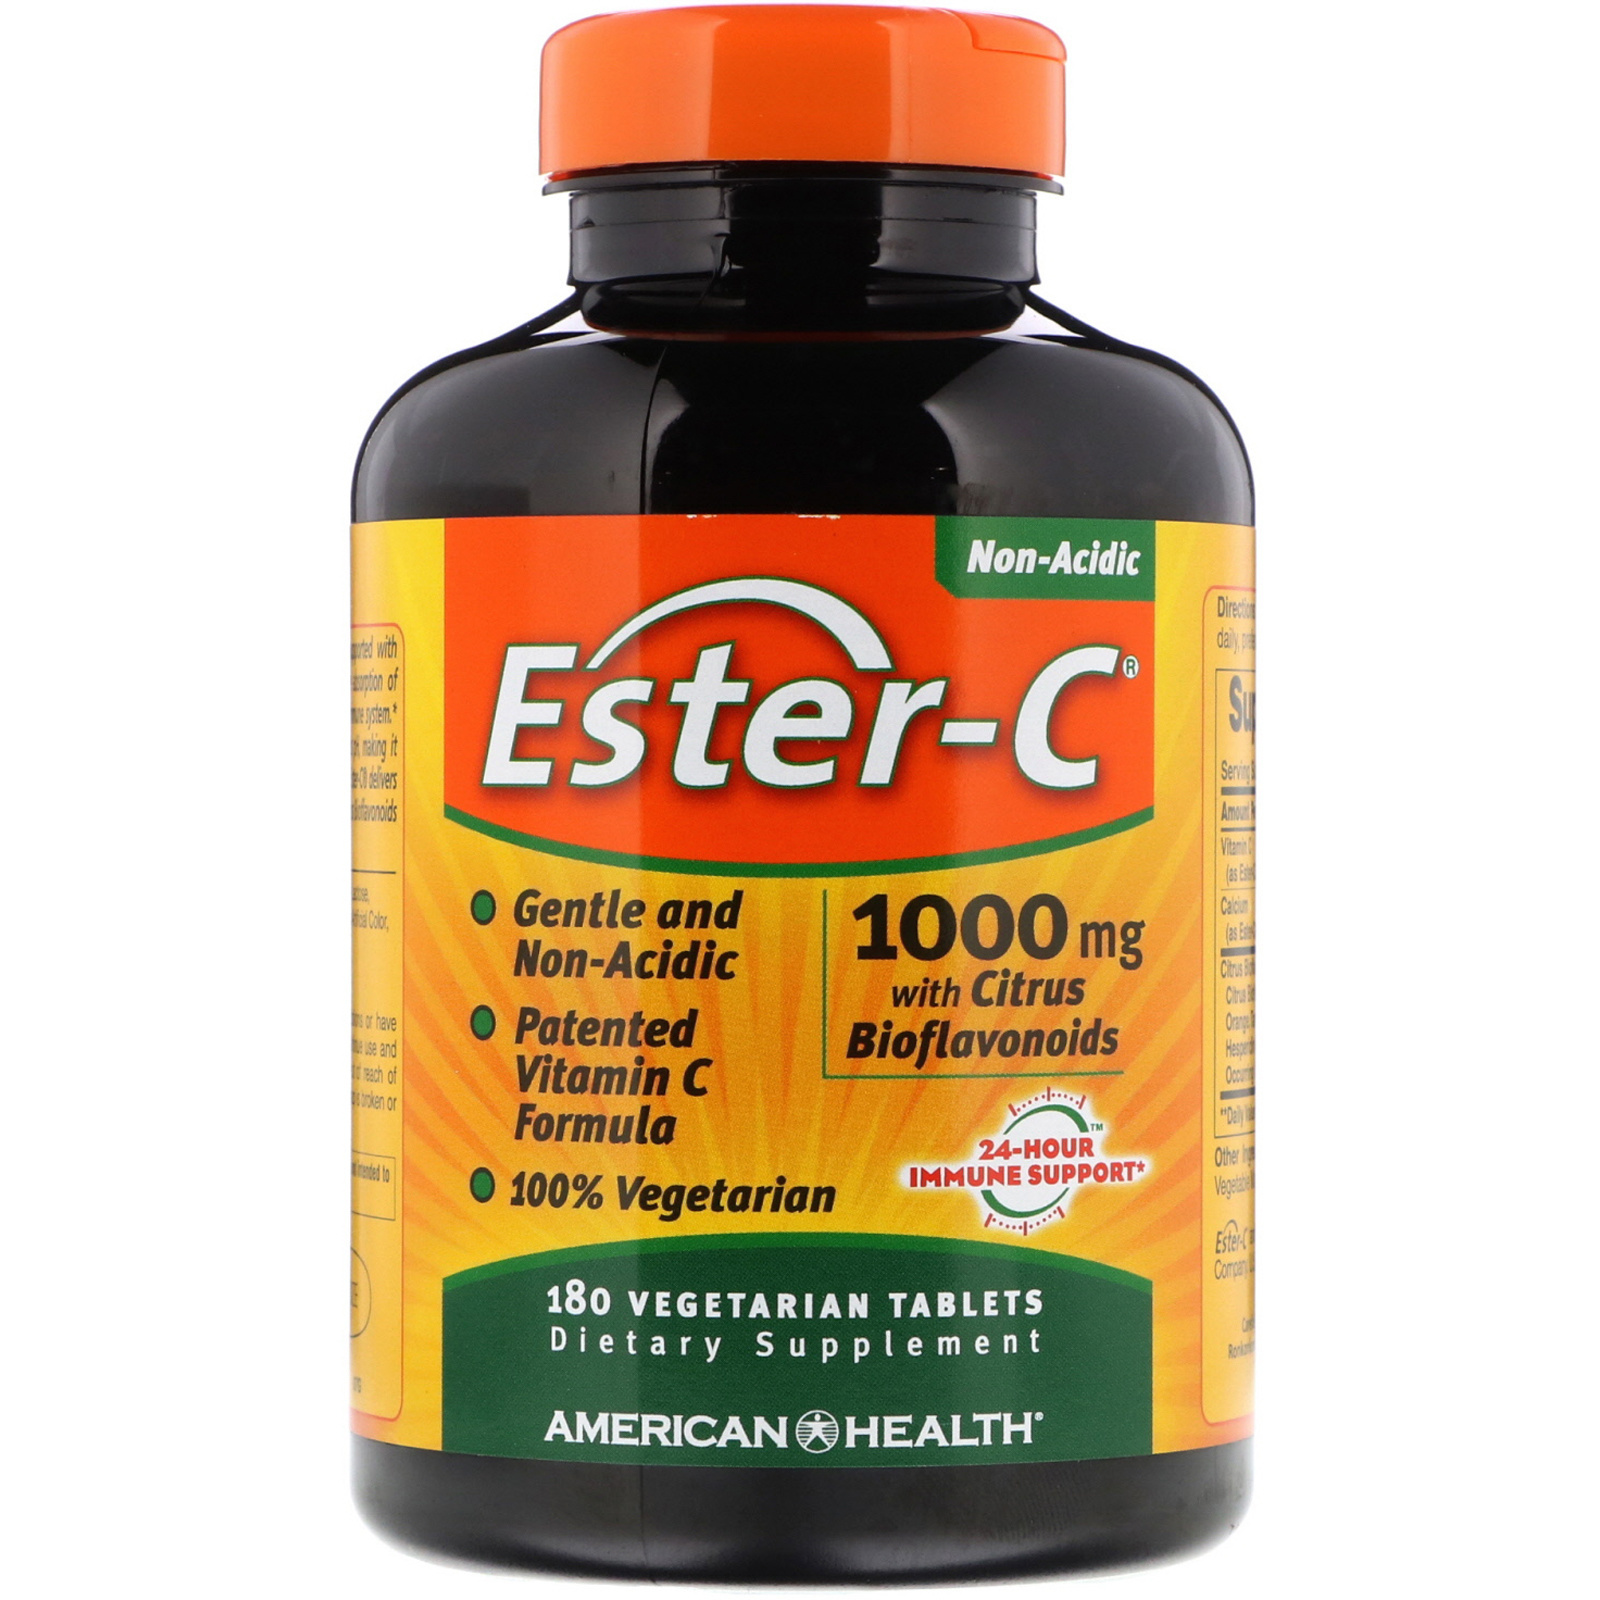 American Health Ester-c With Citrus Bioflavonoids 1000 Mg, 180 Tablets, 10-packs